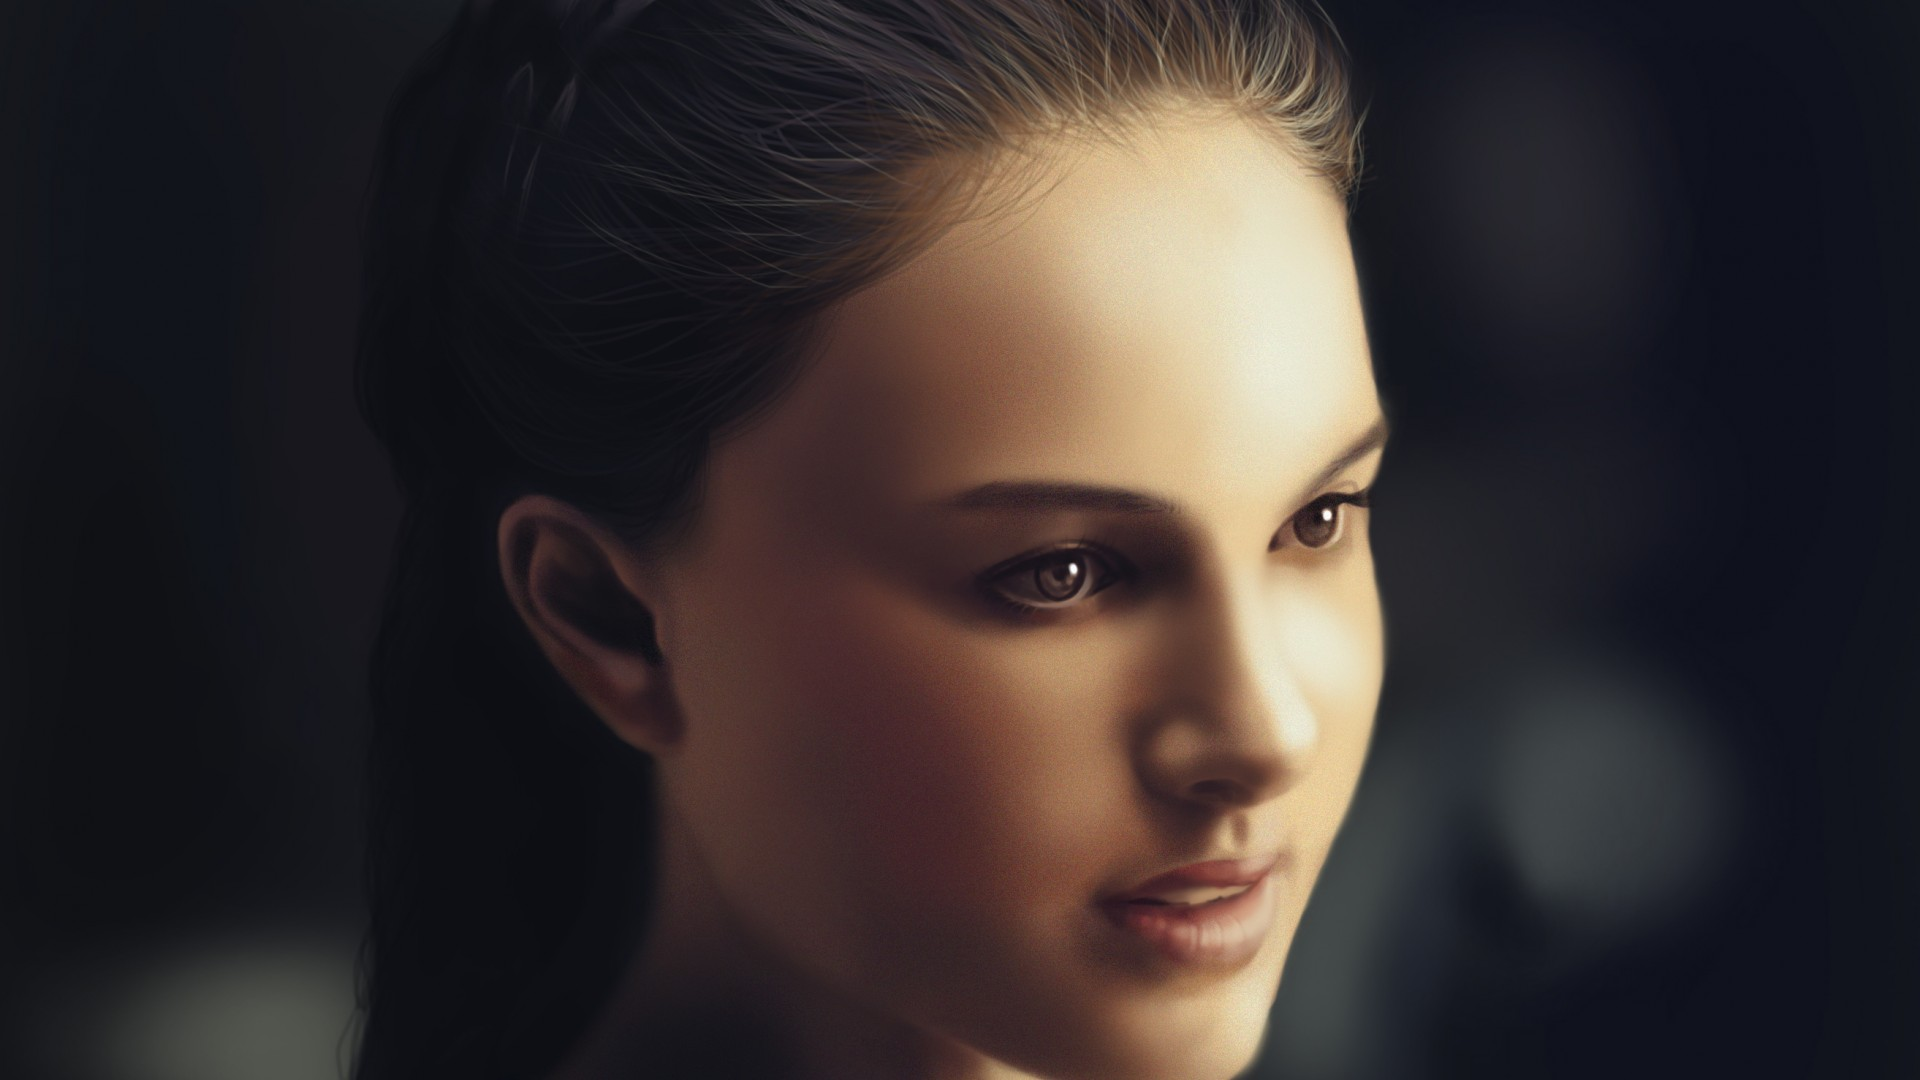 Natalie Portman Wallpapers, Pictures, Images